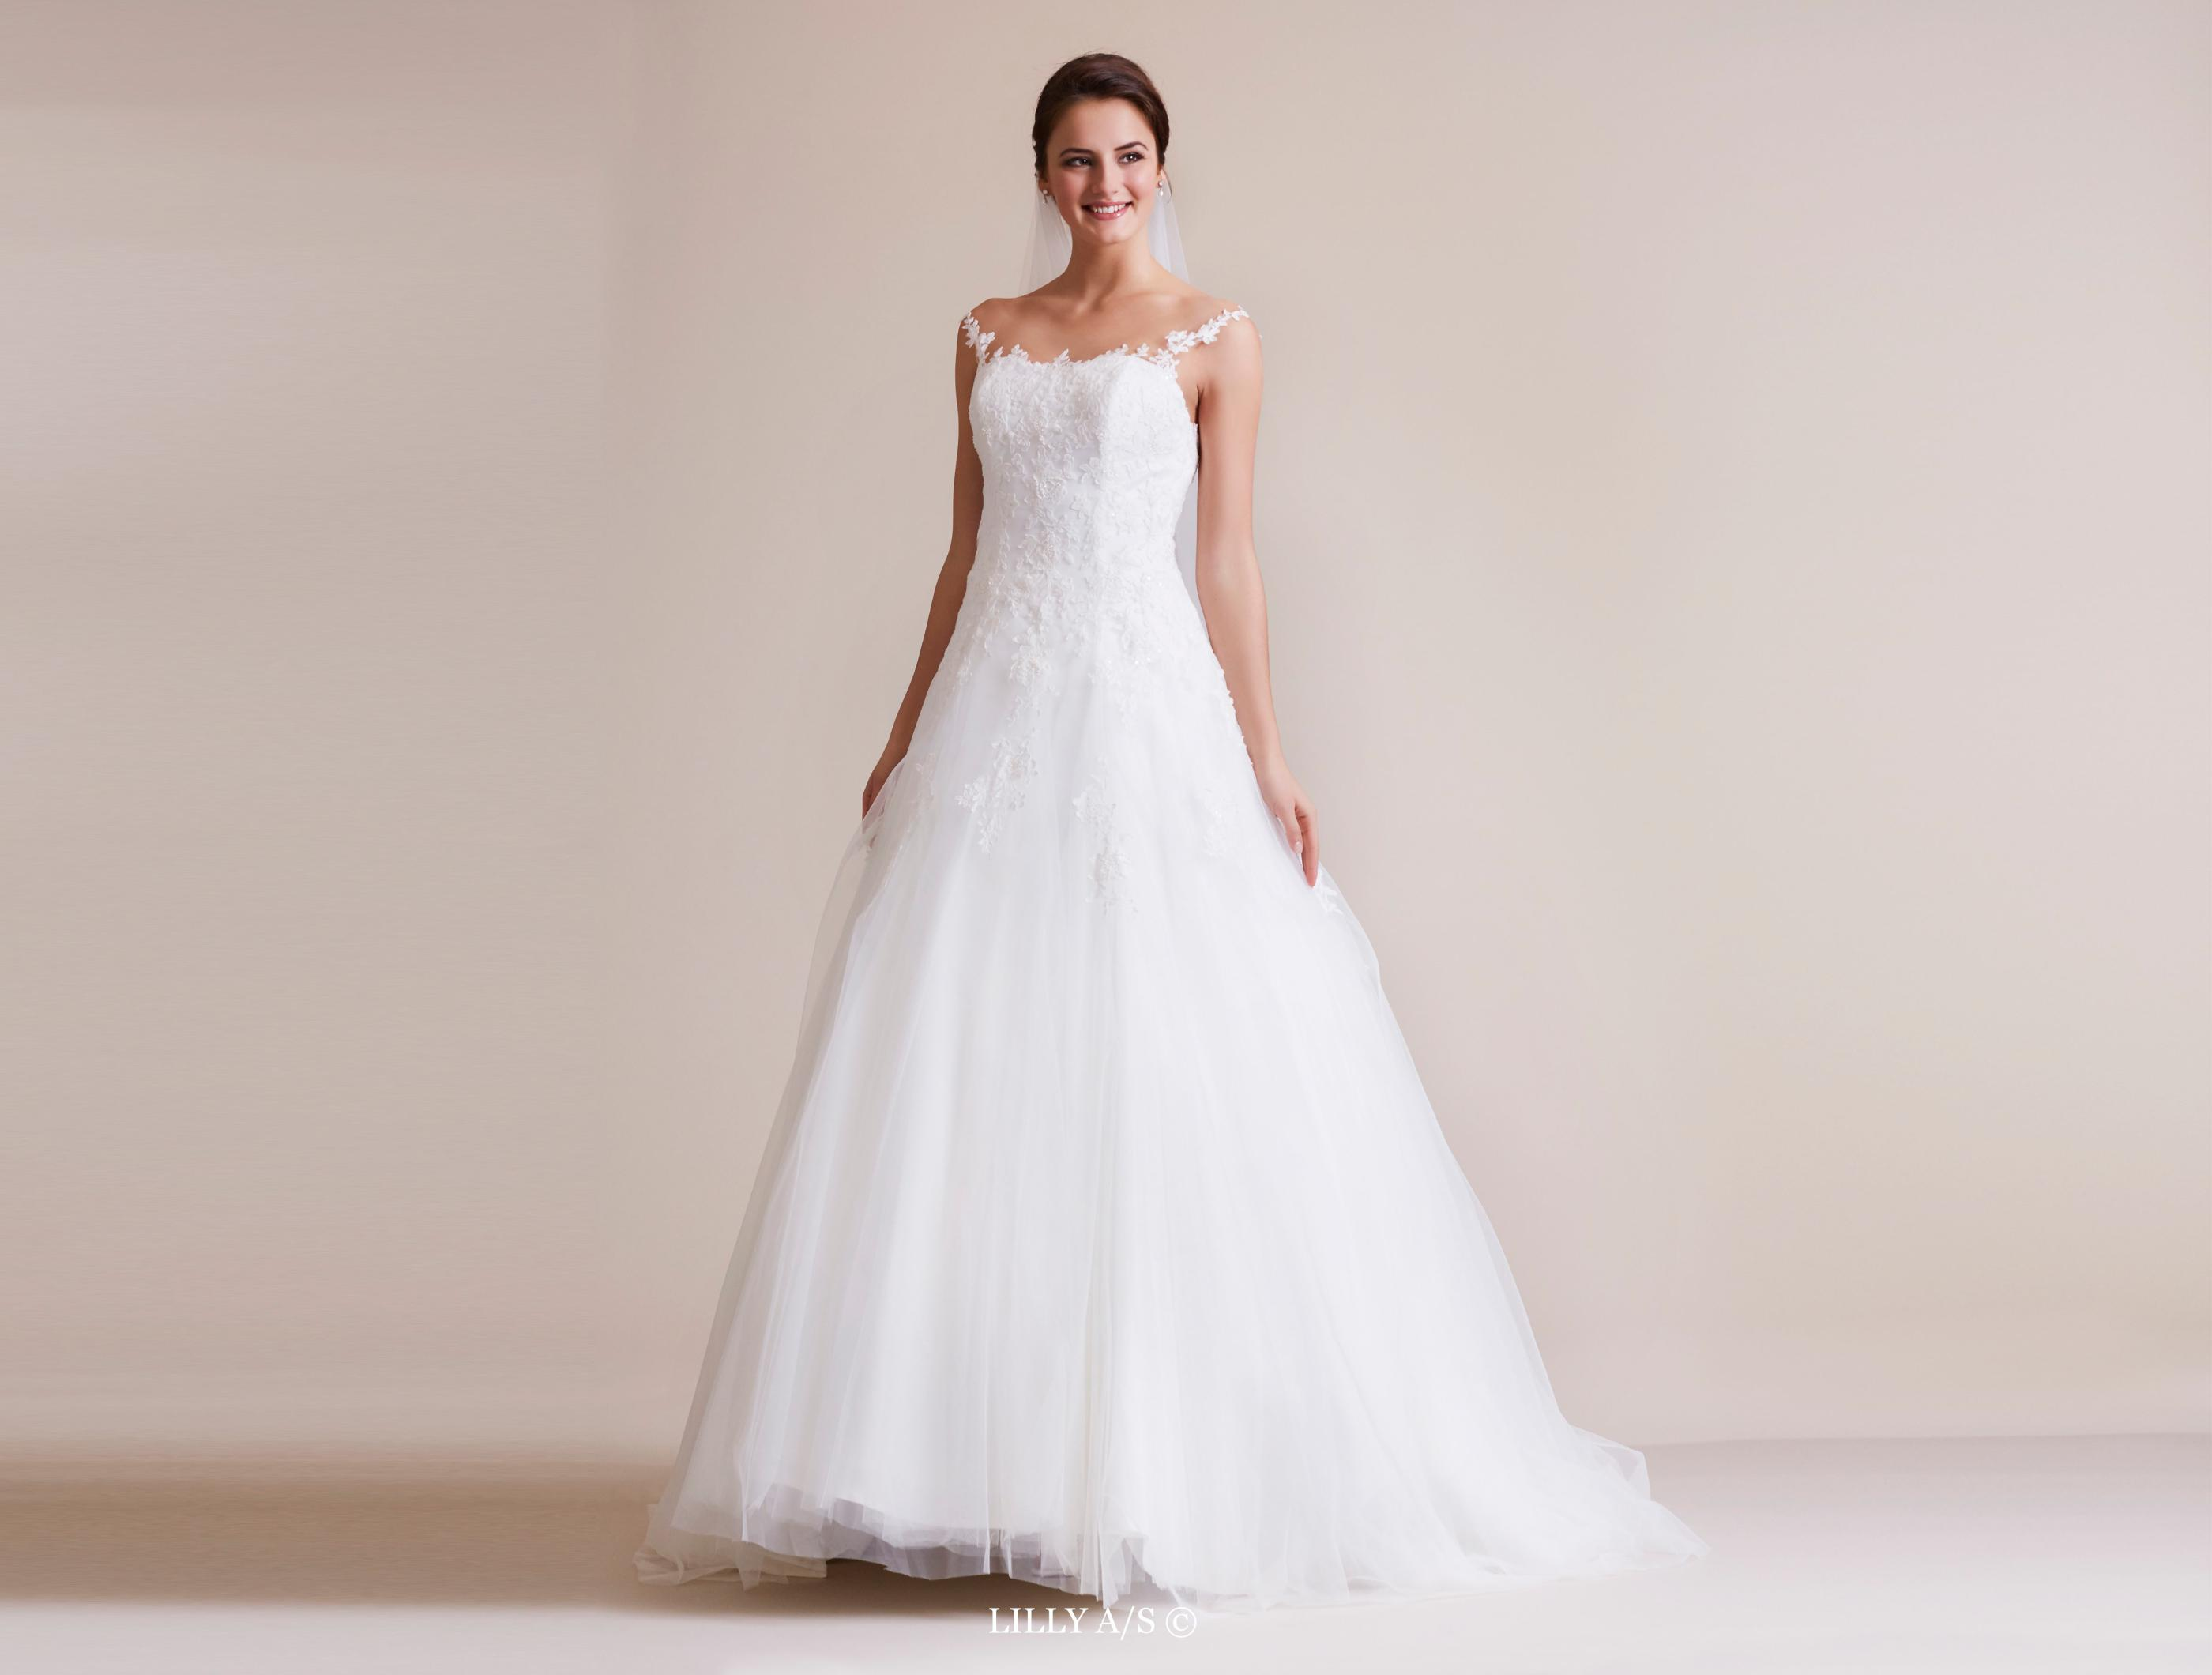 LILLY Bridalfashion - Weddingdresses and bridalgowns